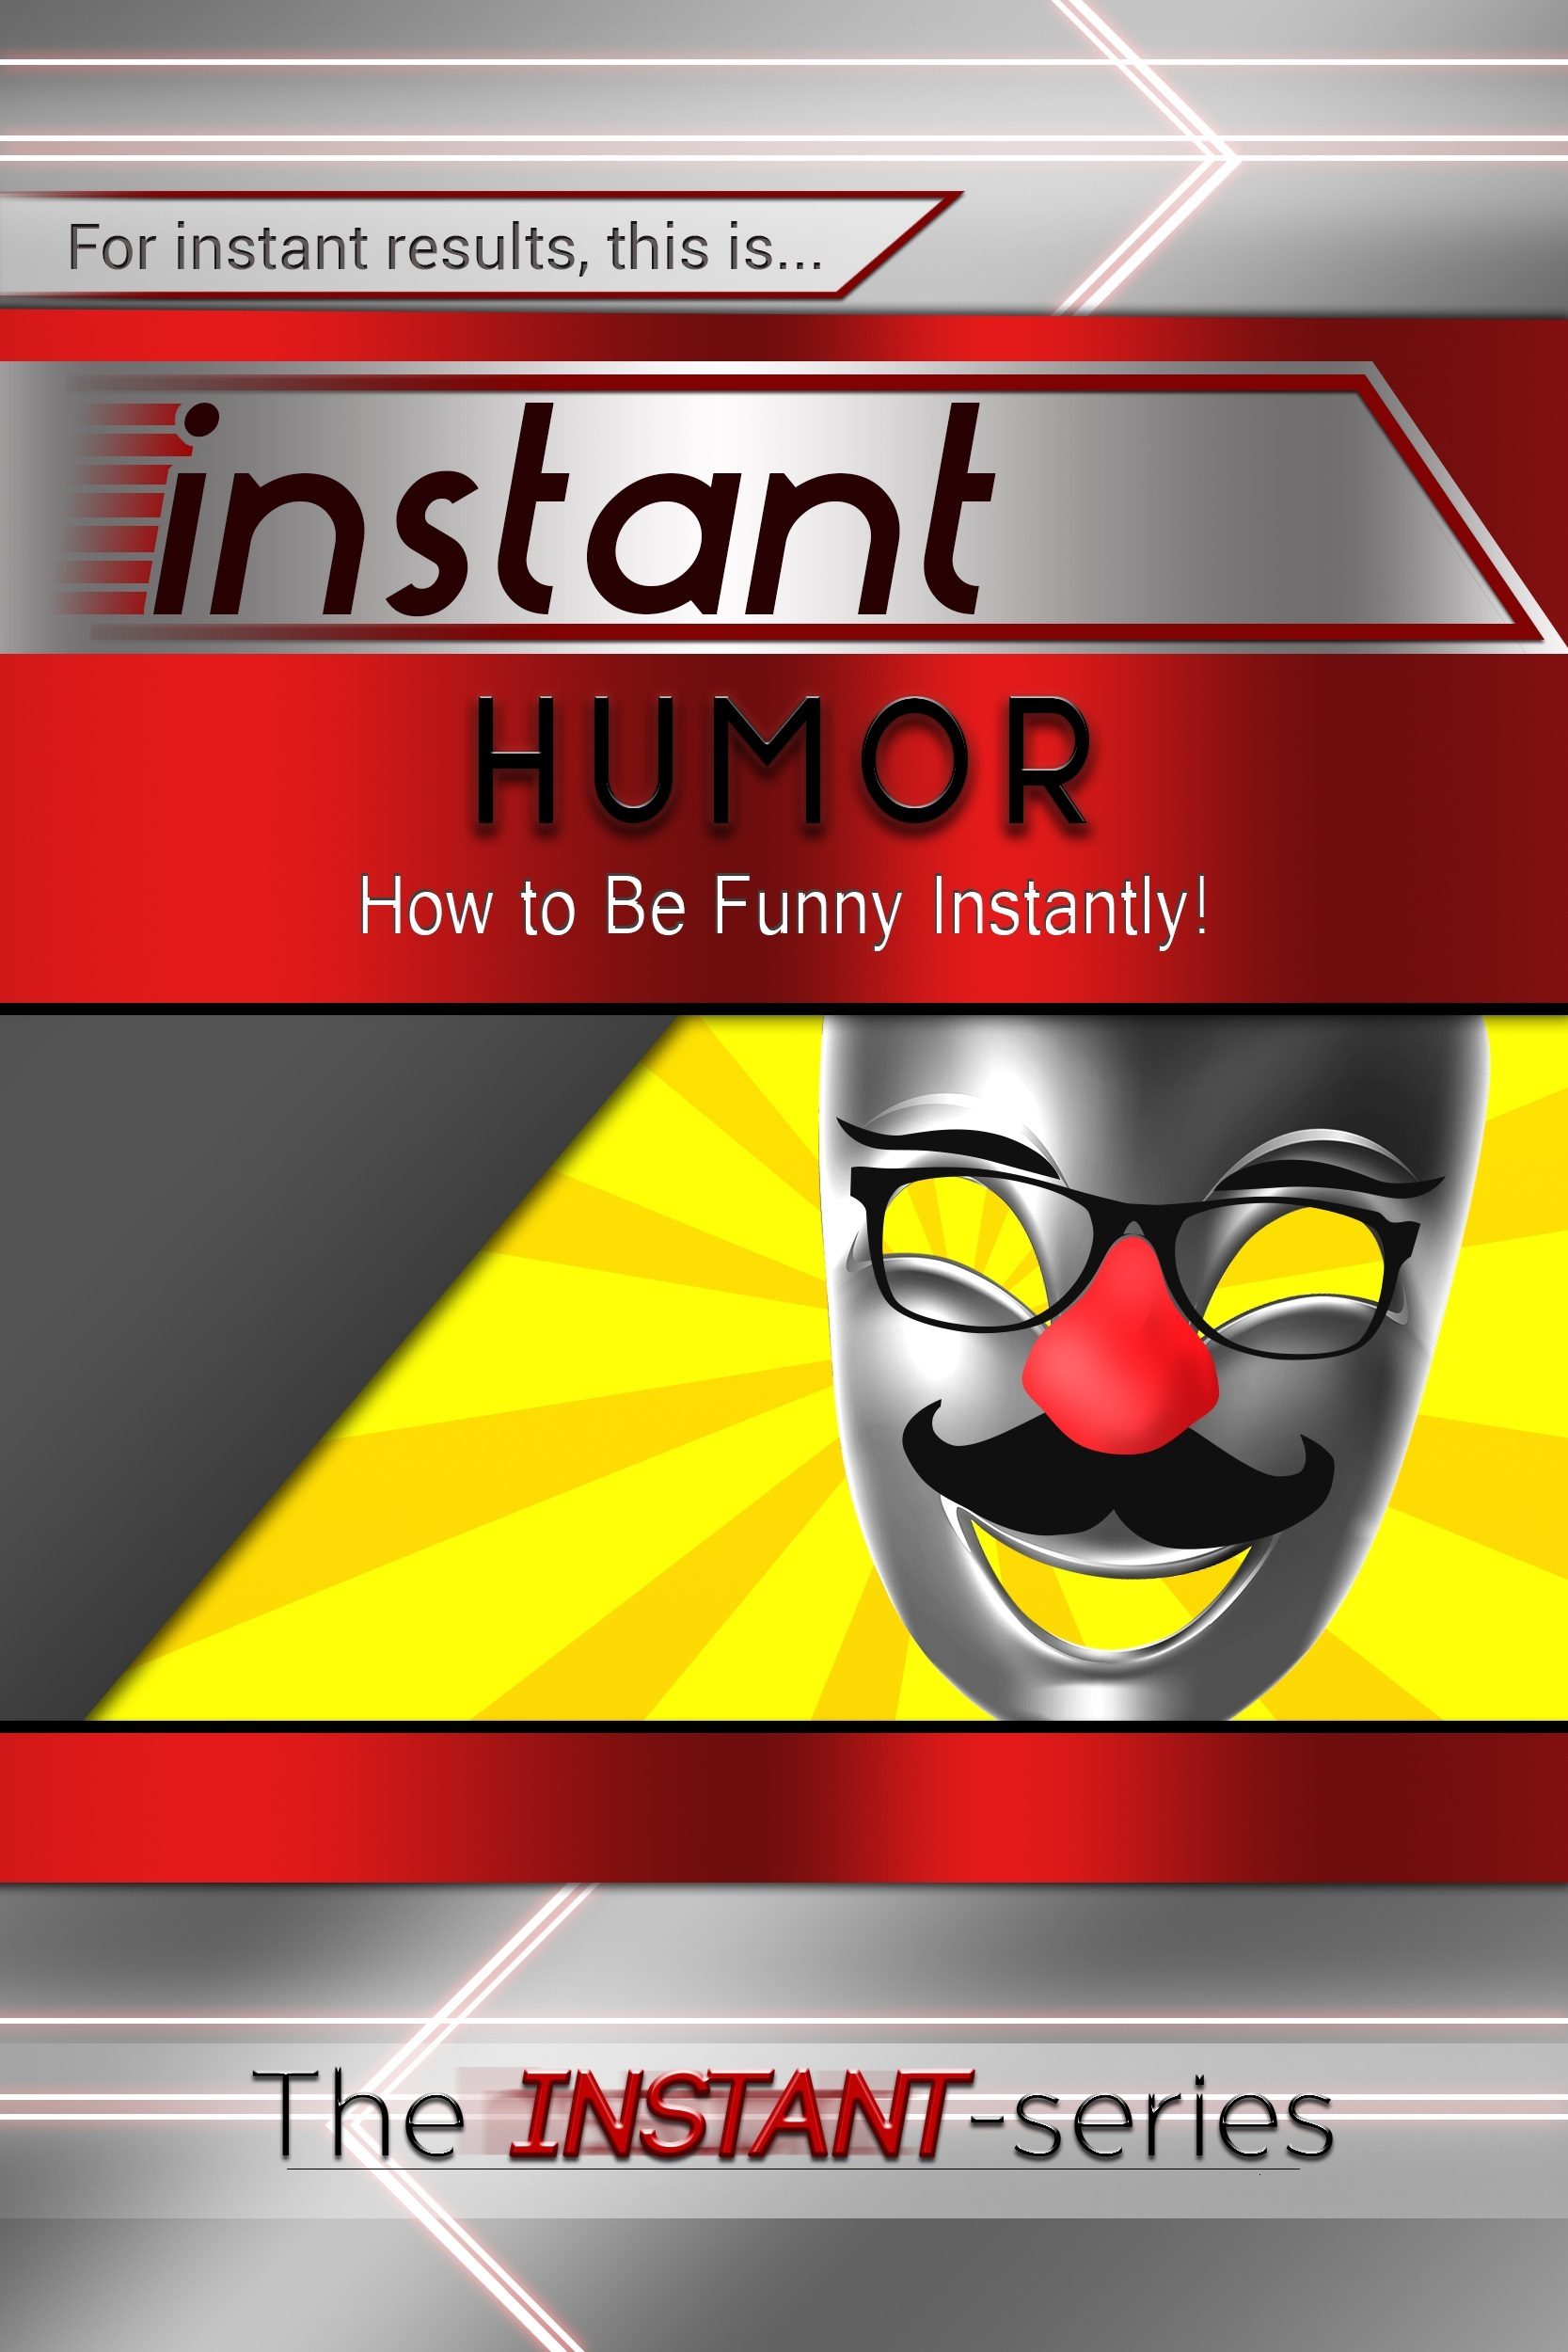 Instant Humor The Instant-Series